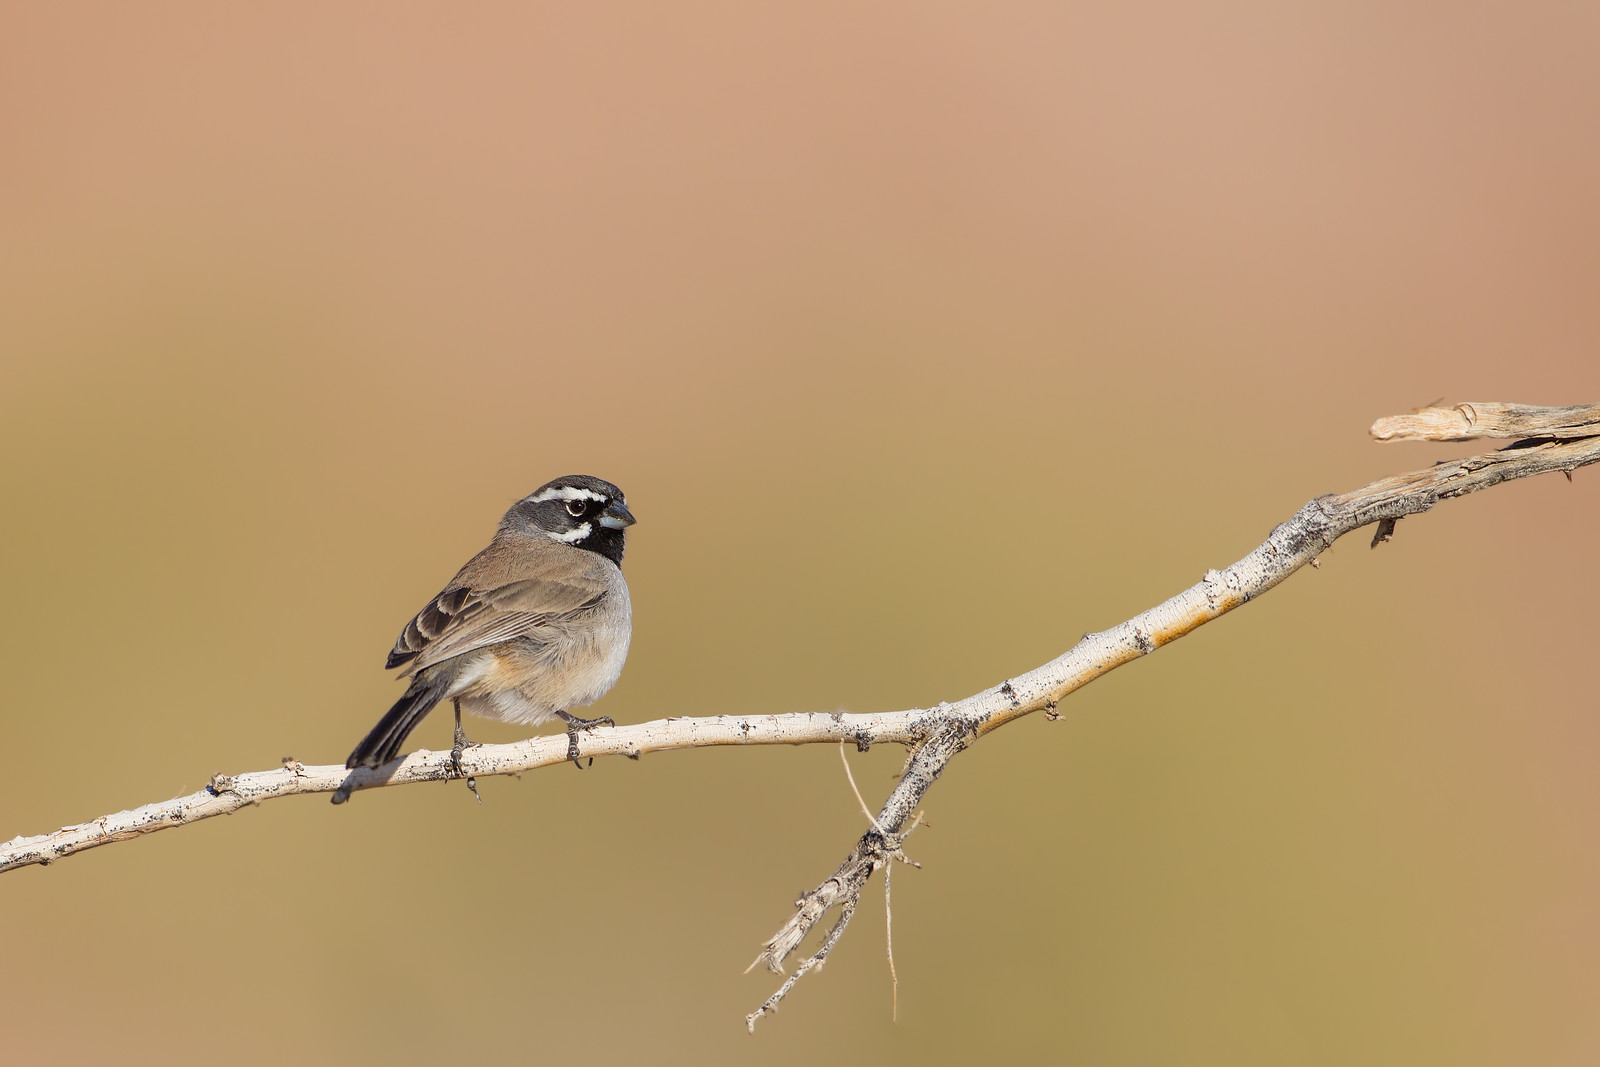 Black-throated Sparrow - Salton Sea, CA, USA